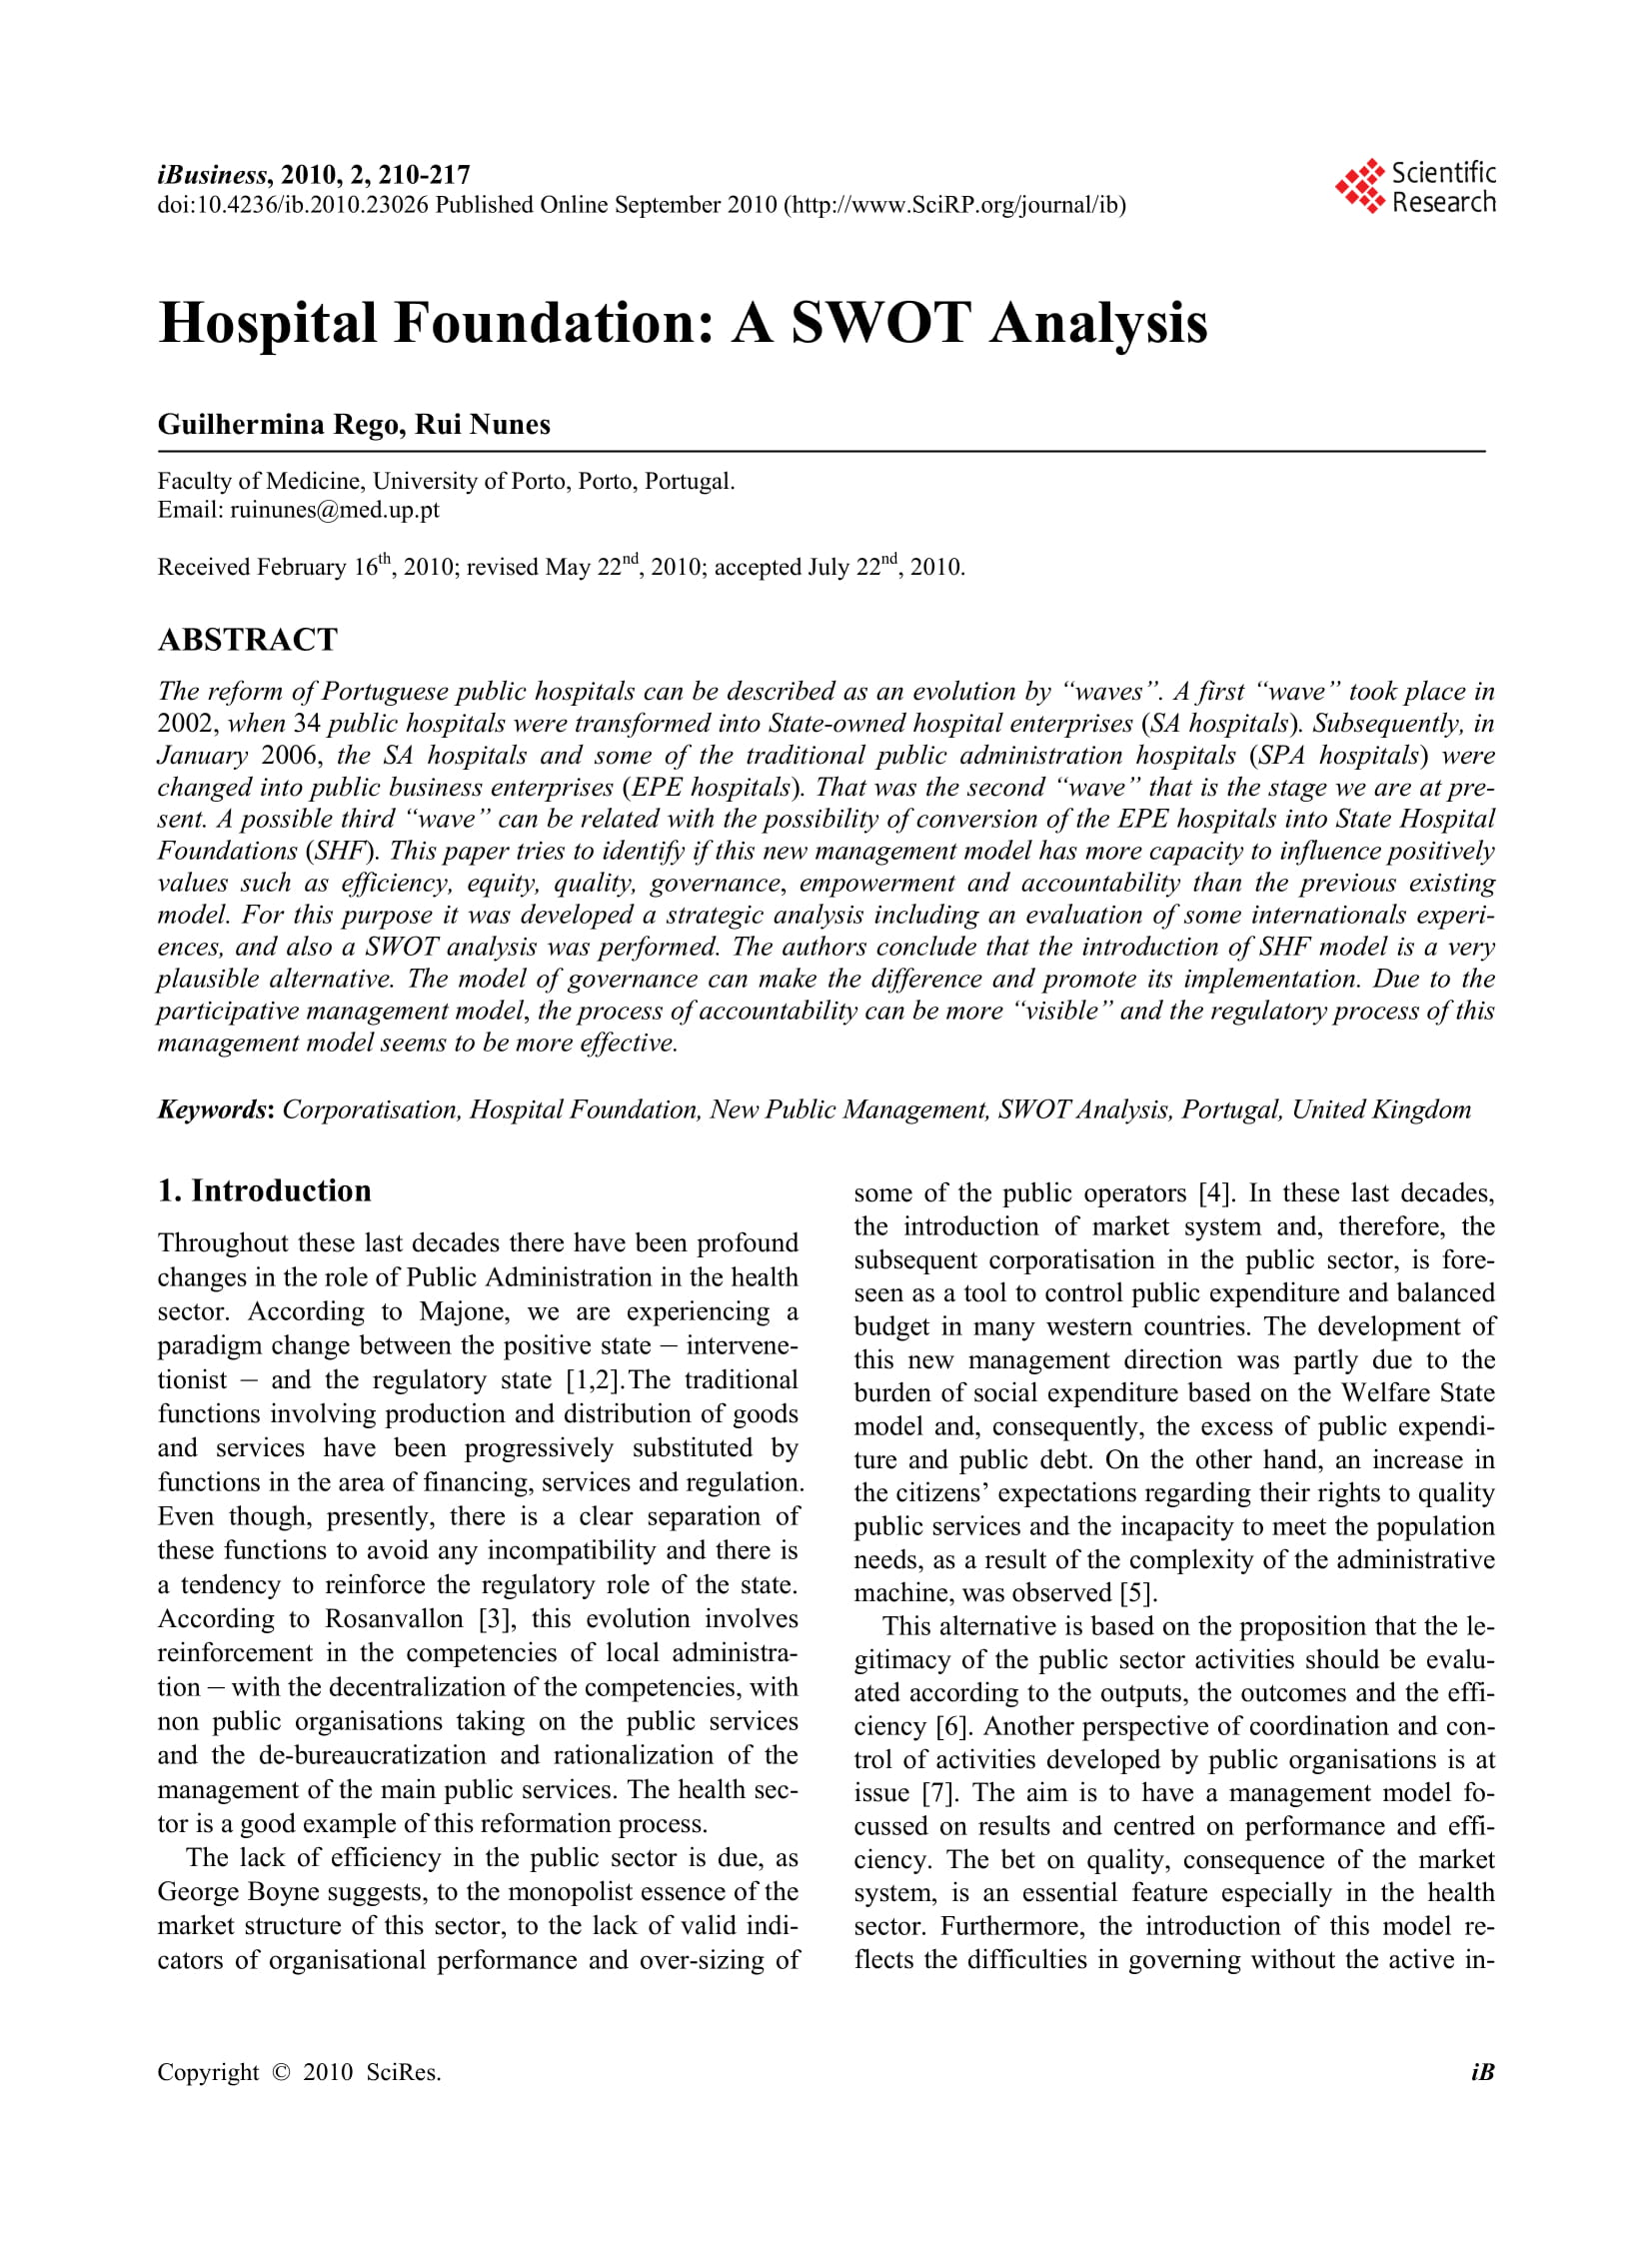 hospital foundation health care provision management and operational swot analysis example 1